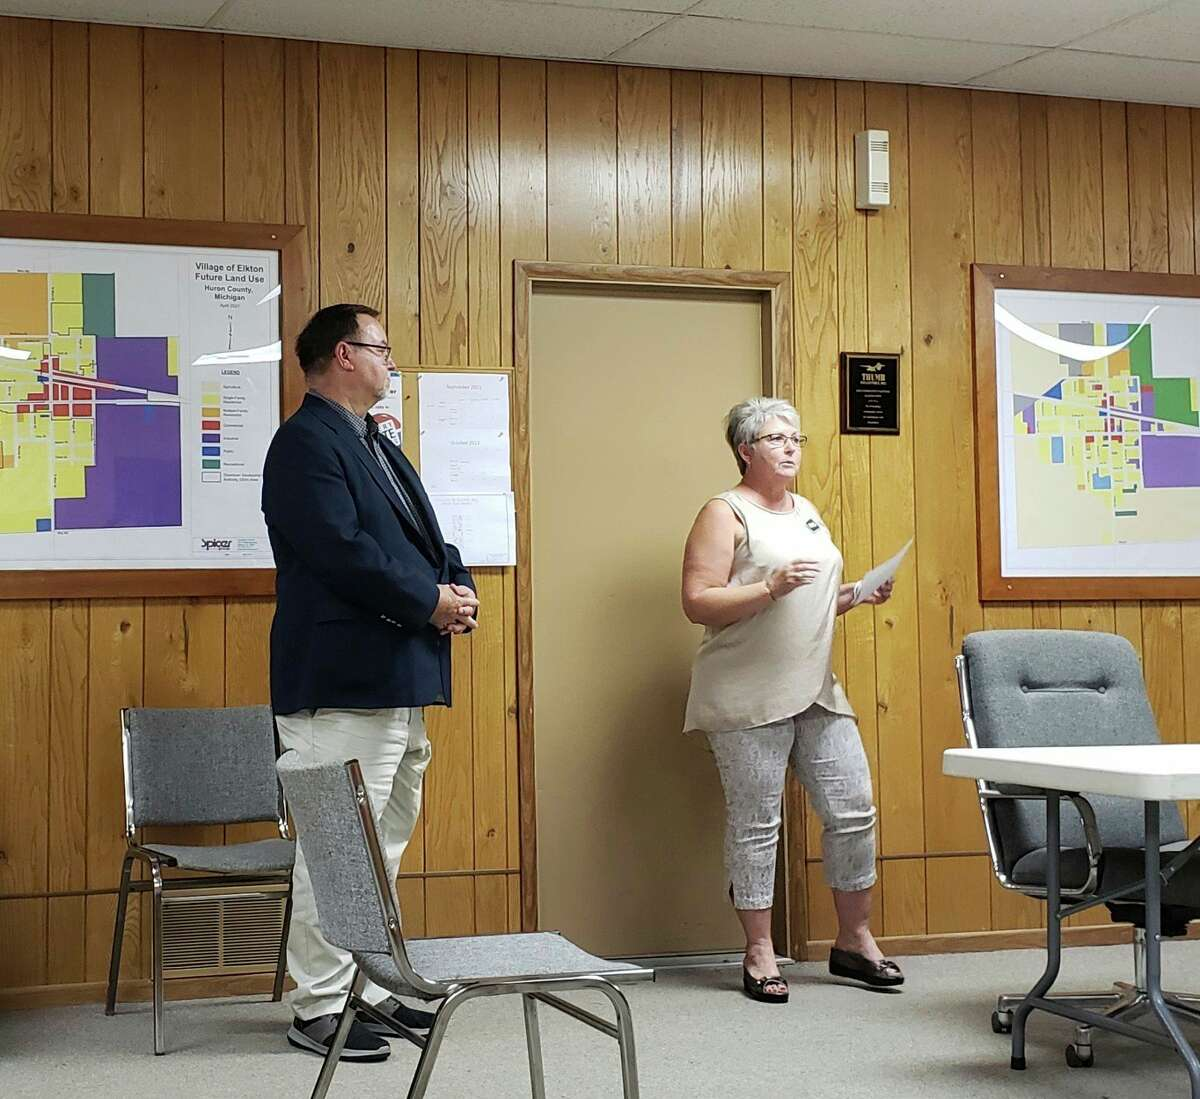 Terry Brown and Brenda Kelley speak about Agri-Valley Services' plans for installing fiber optic internet service in Elkton on Thursday. The project would be the first of its kind in Huron County and would bring high speed internet to whoever in Elkton wants it. (Robert Creenan/Huron Daily Tribune)